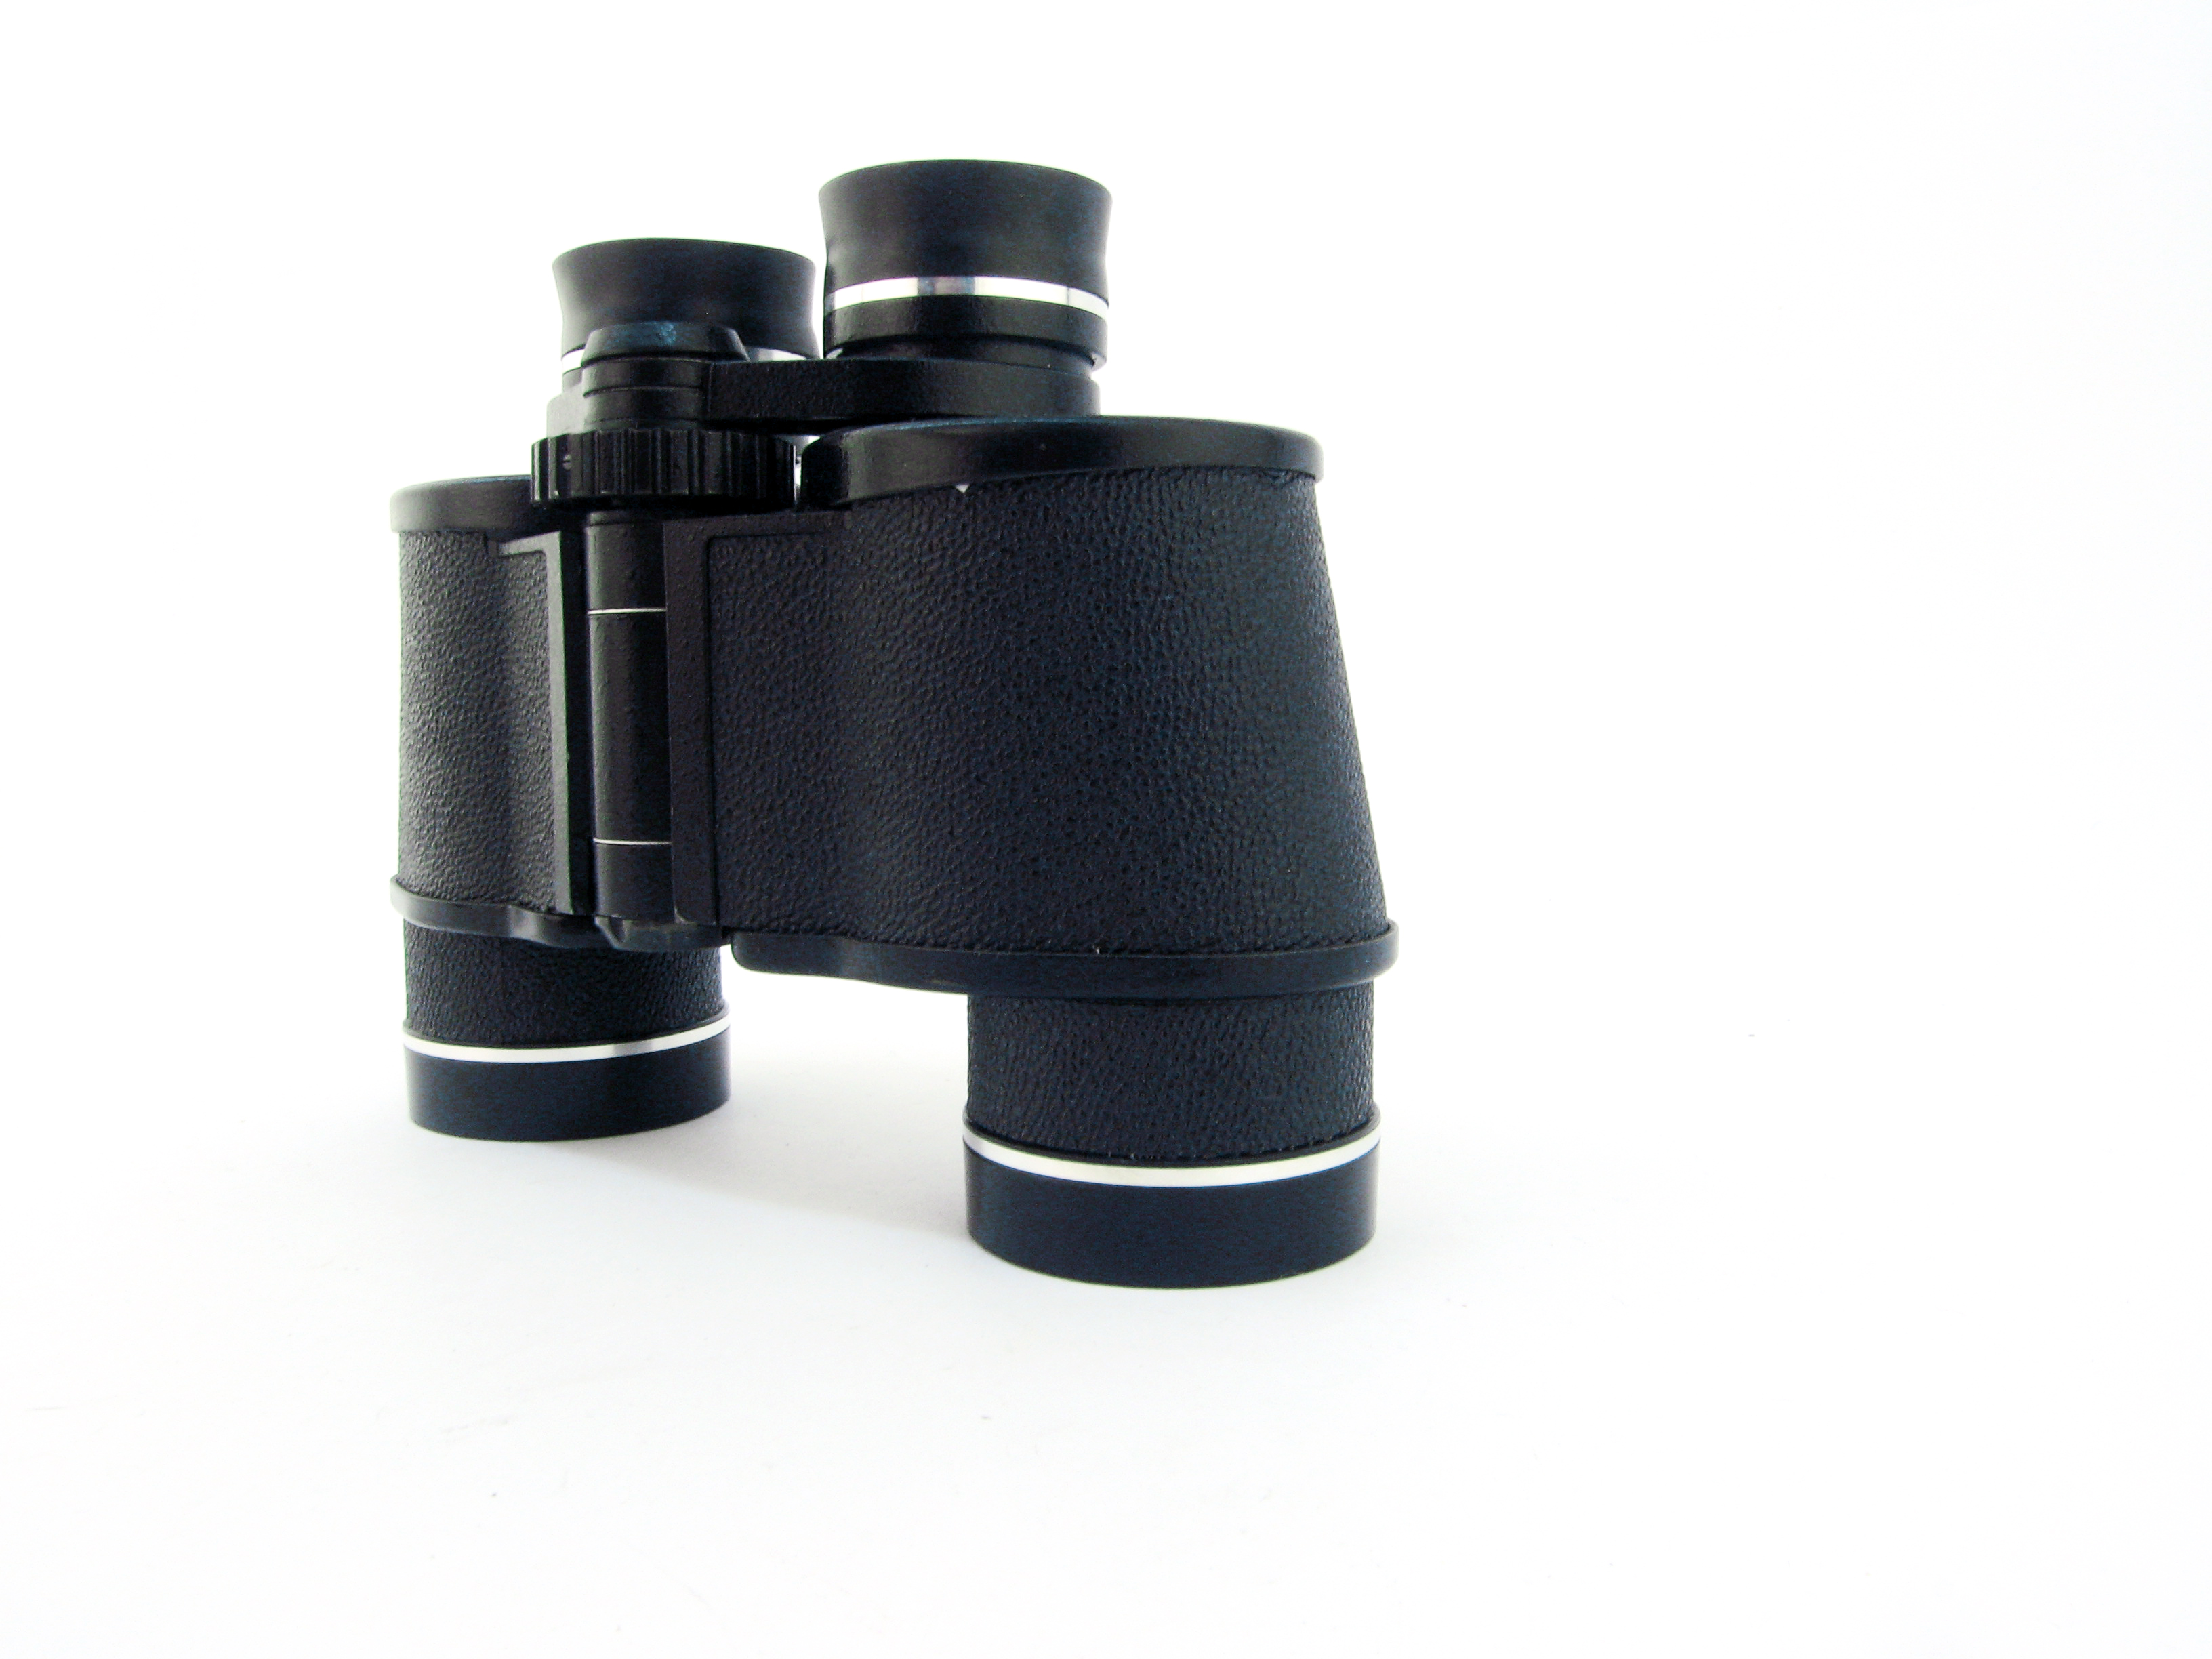 Binoculars, Above, Watching, Viewer, Topview, HQ Photo